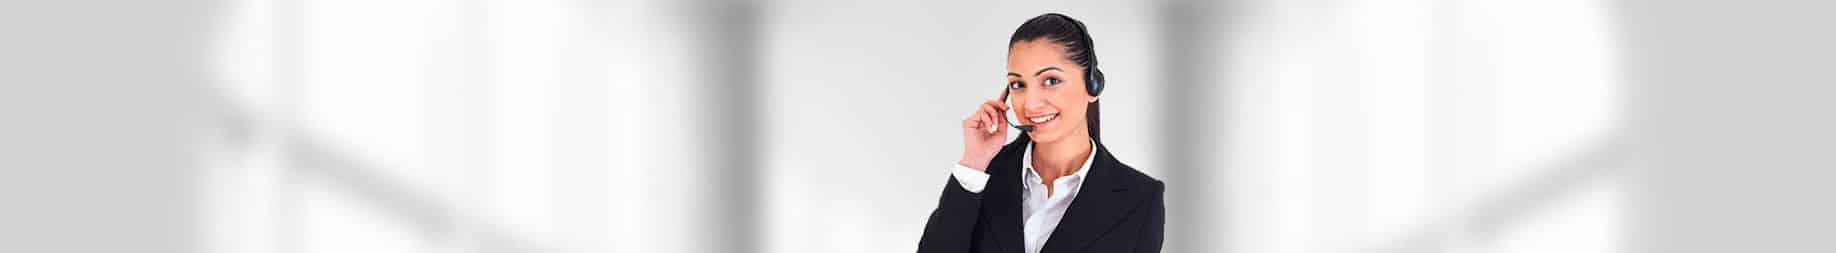 Belize Call Center | Belize | Outsourcing to Belize | Call Centers in Belize | Belize Call Centers | sales